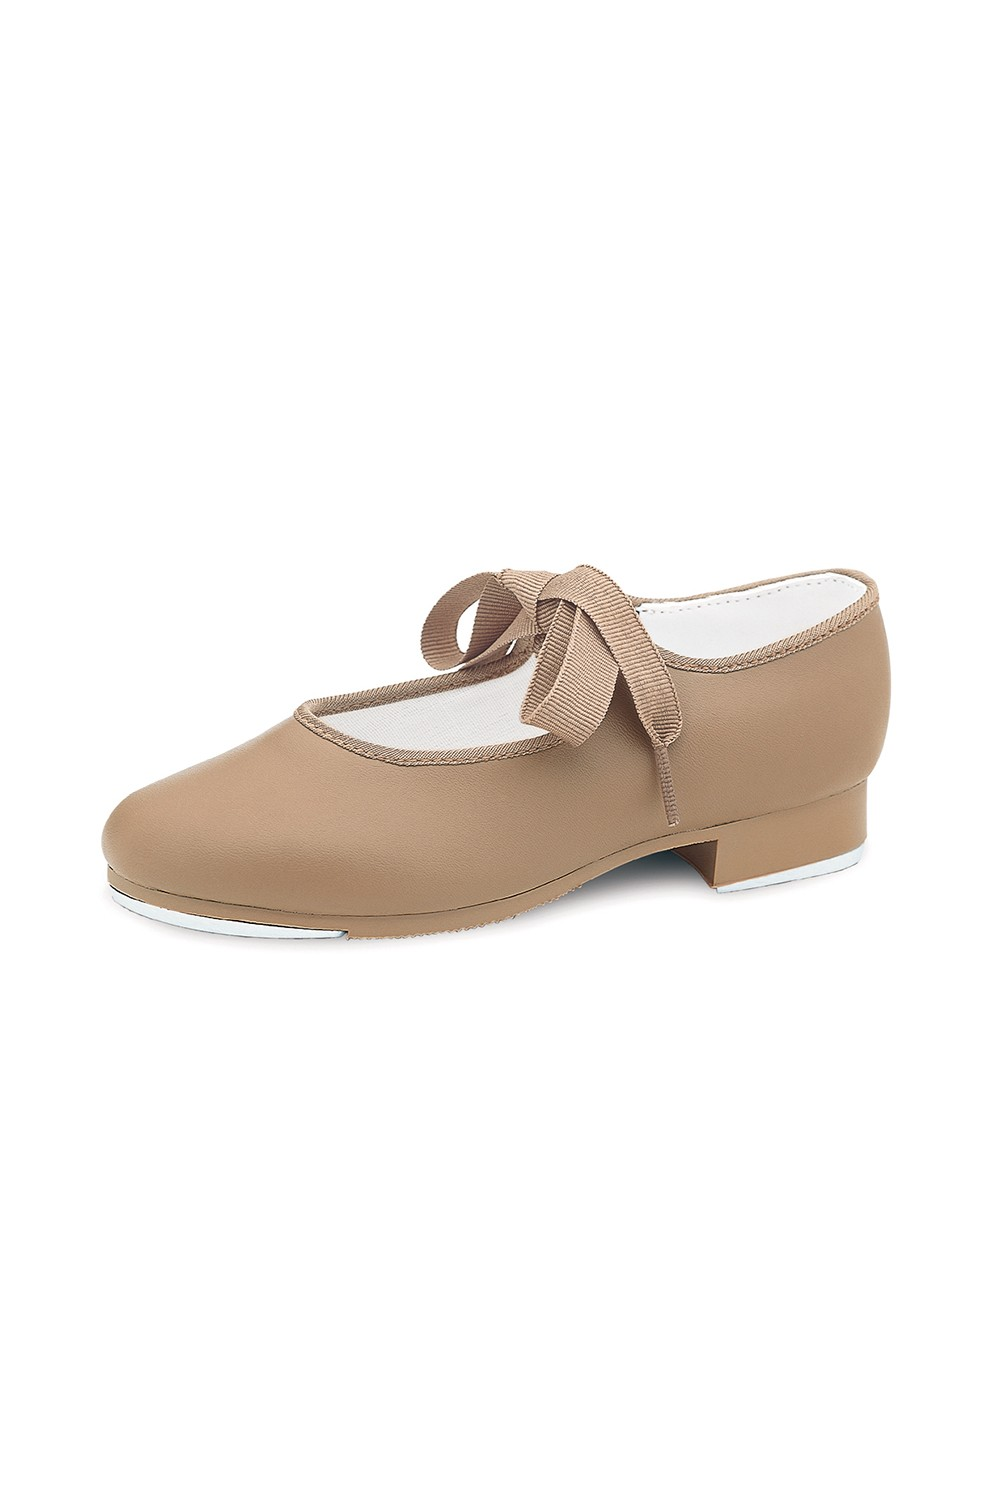 BLOCH® Girl's Tap Shoes - BLOCH® US Store